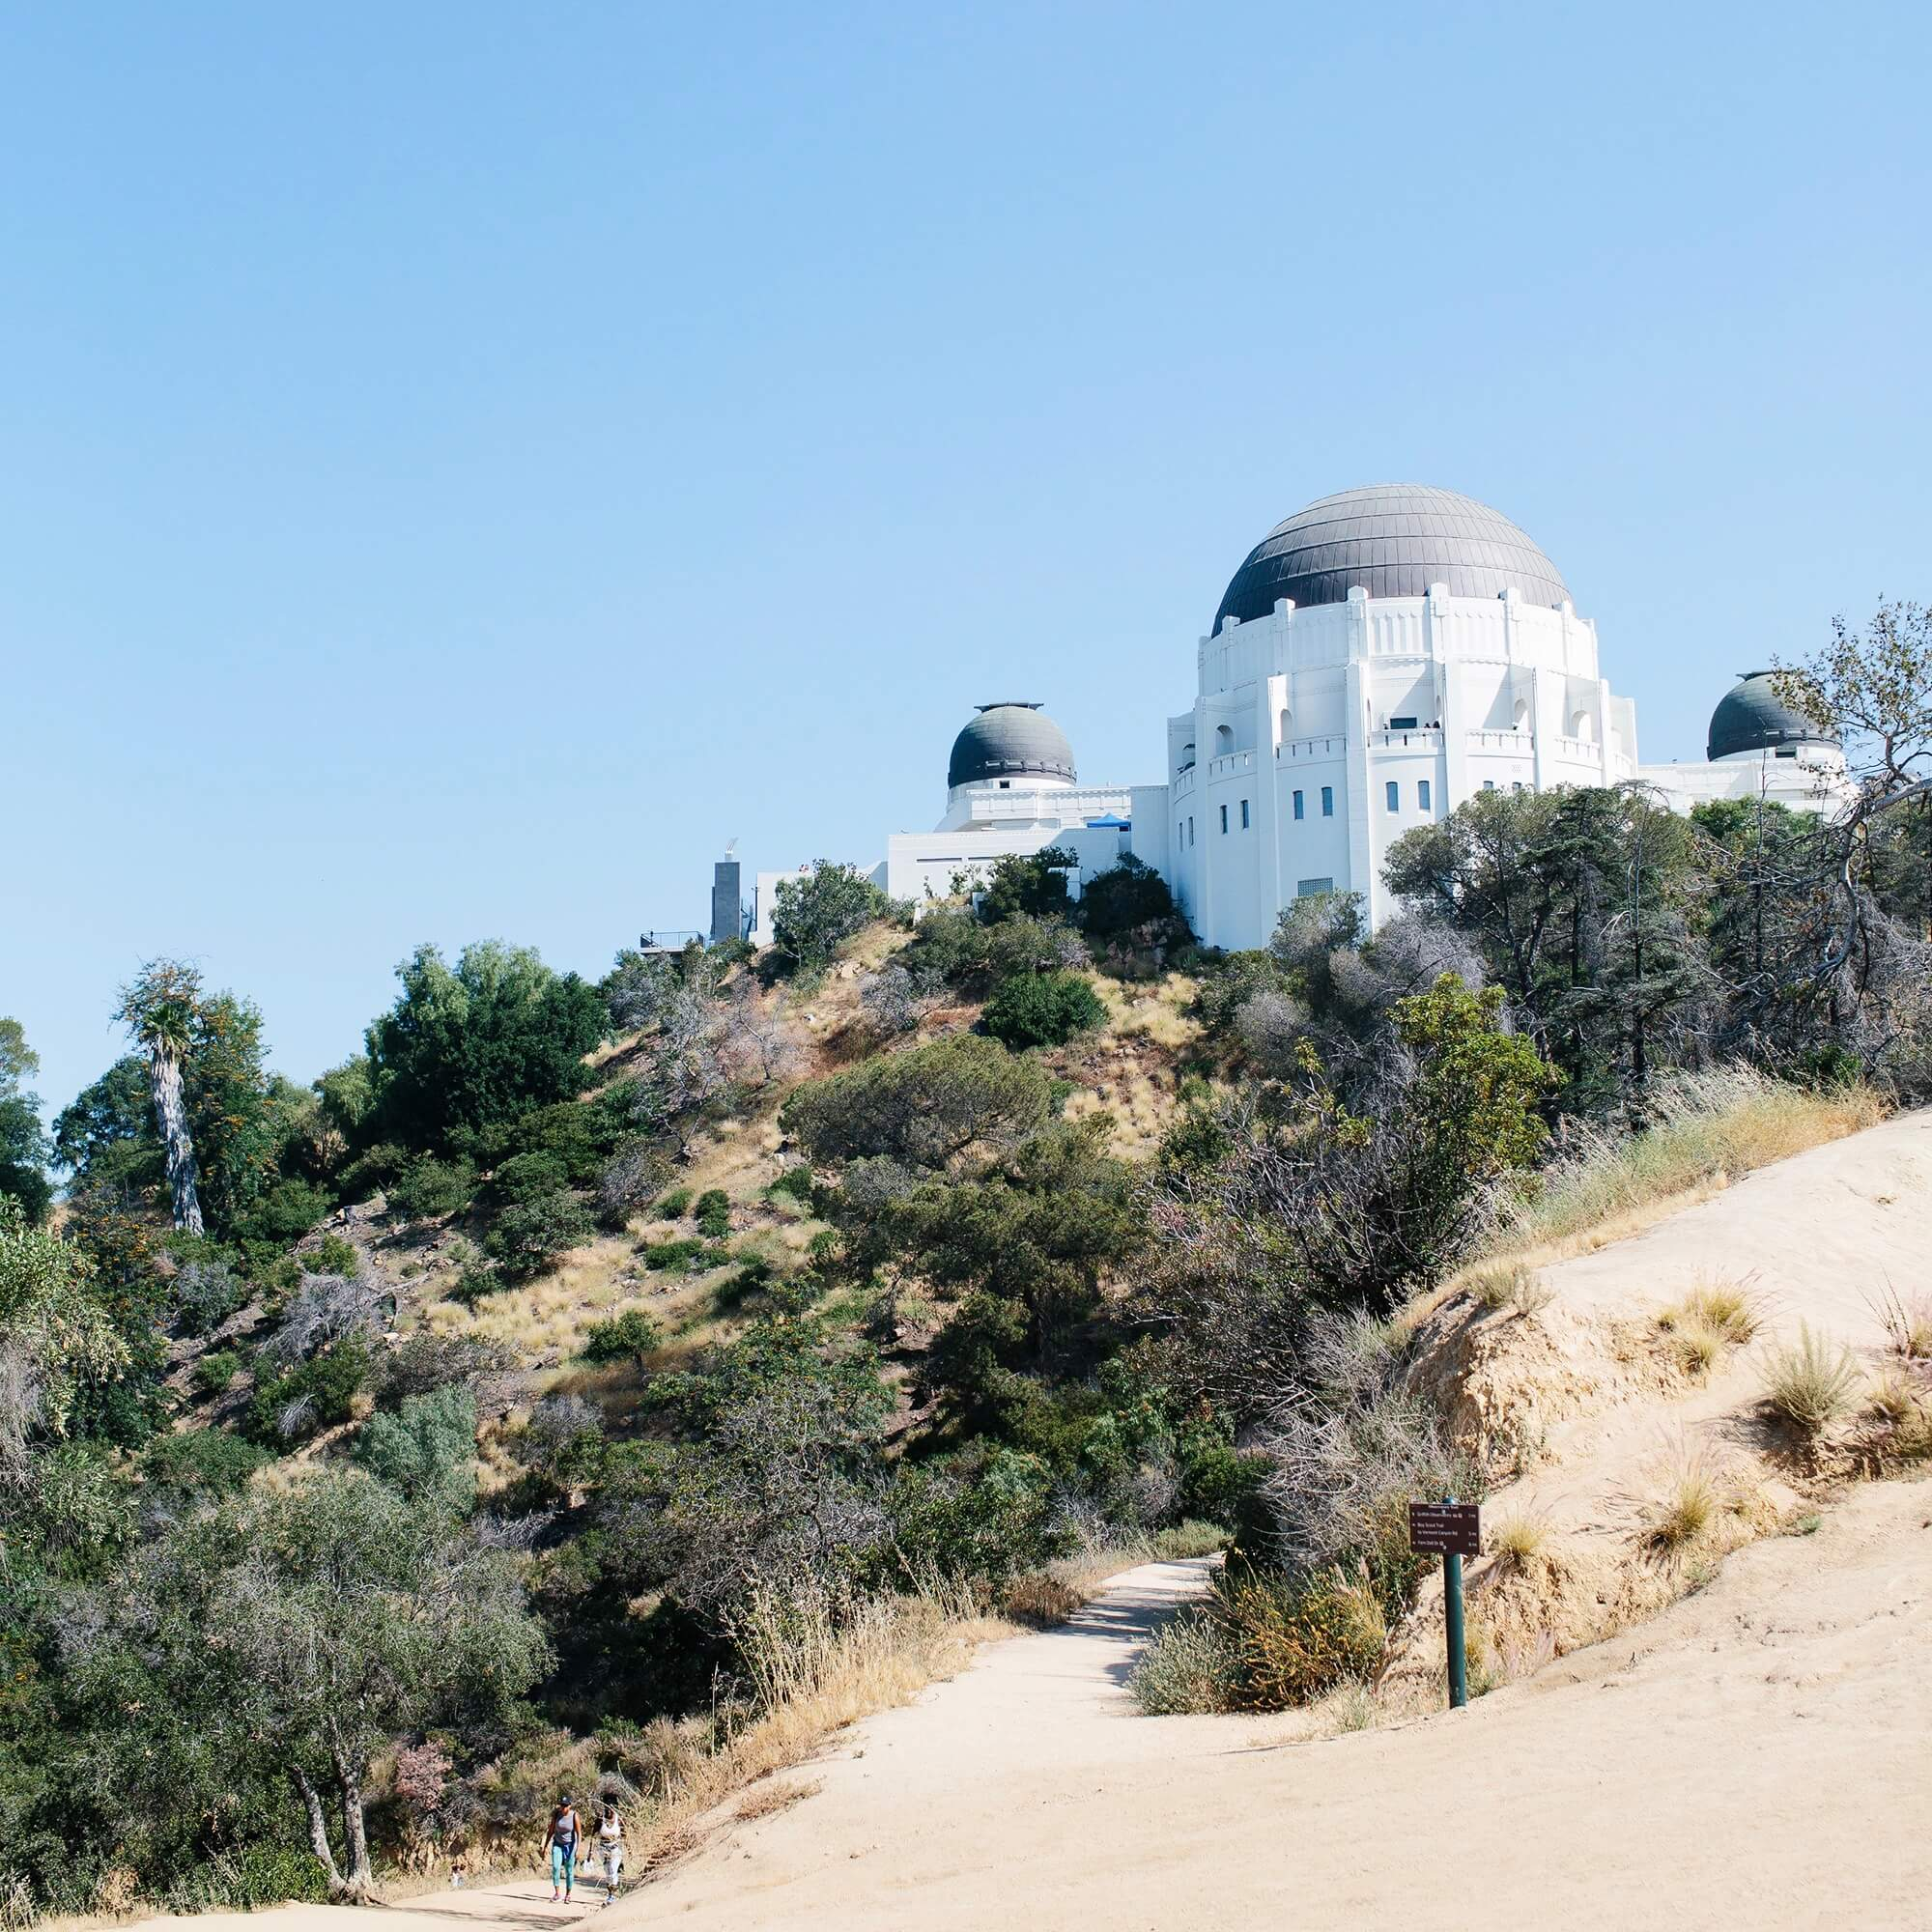 Griffith Observatory during the day